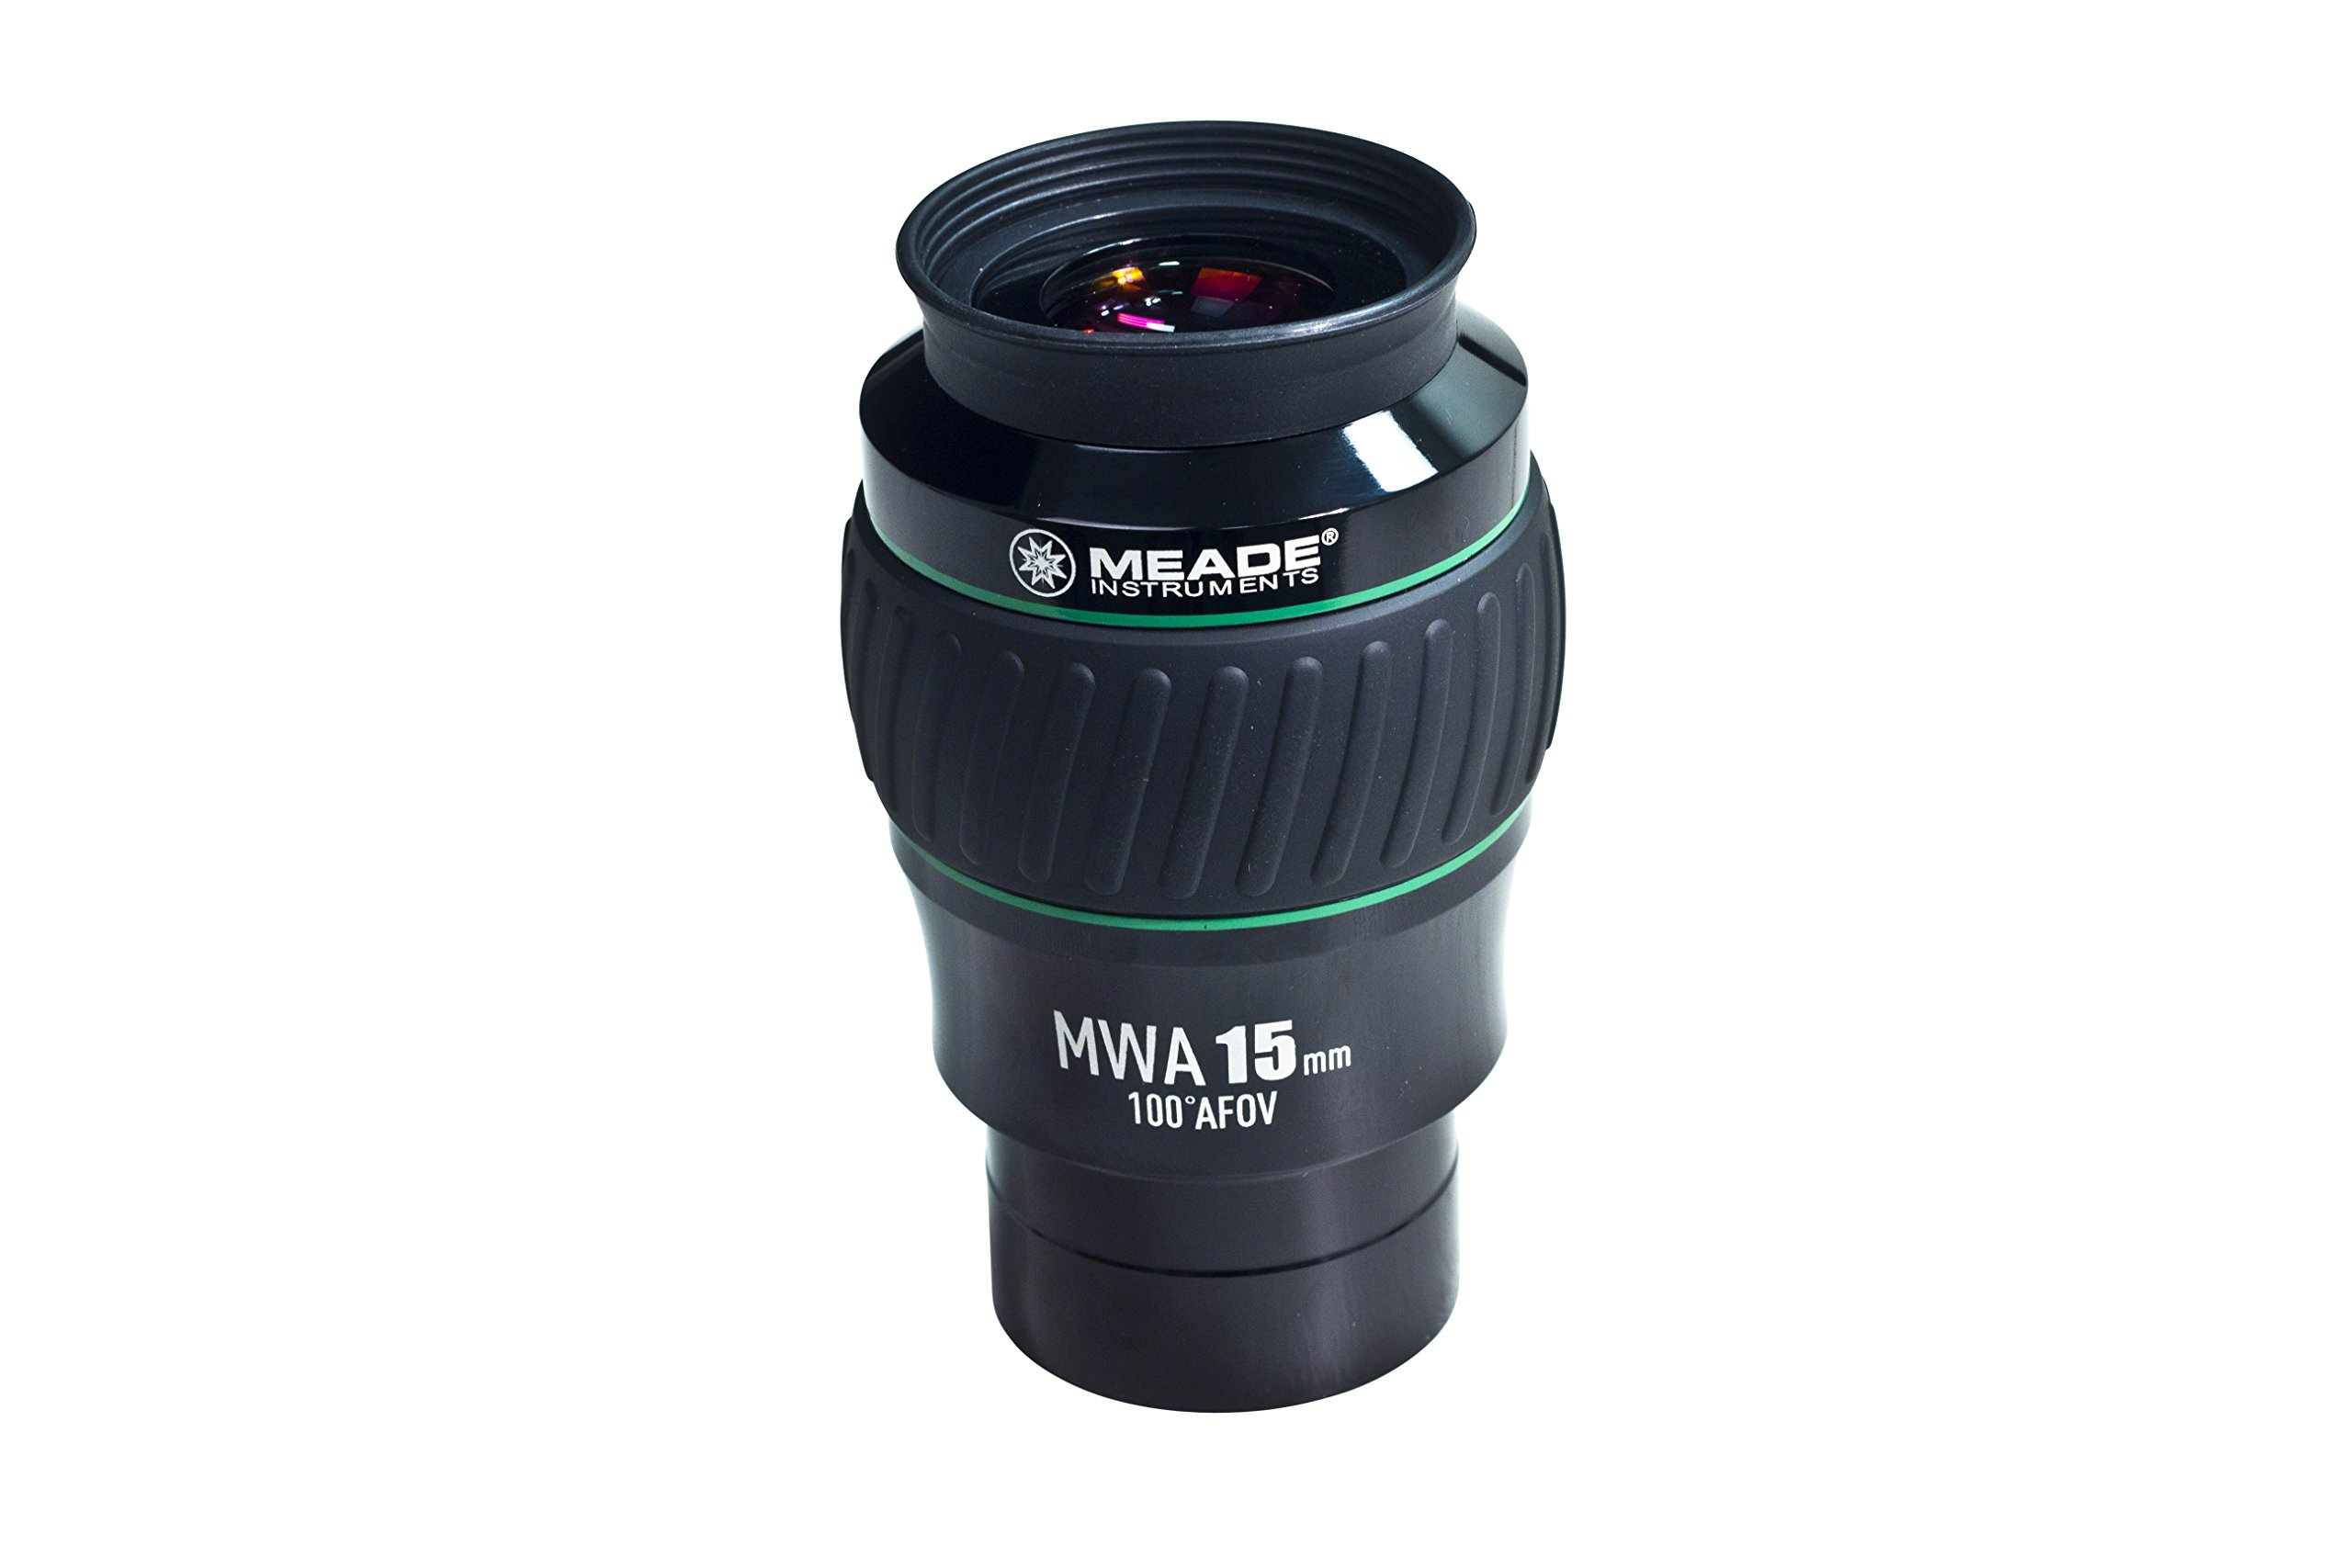 Meade Instruments 607017 Eyepiece, 100 Degree, MWA 15MM, 2-Inch (Black/Green) by Meade Instruments